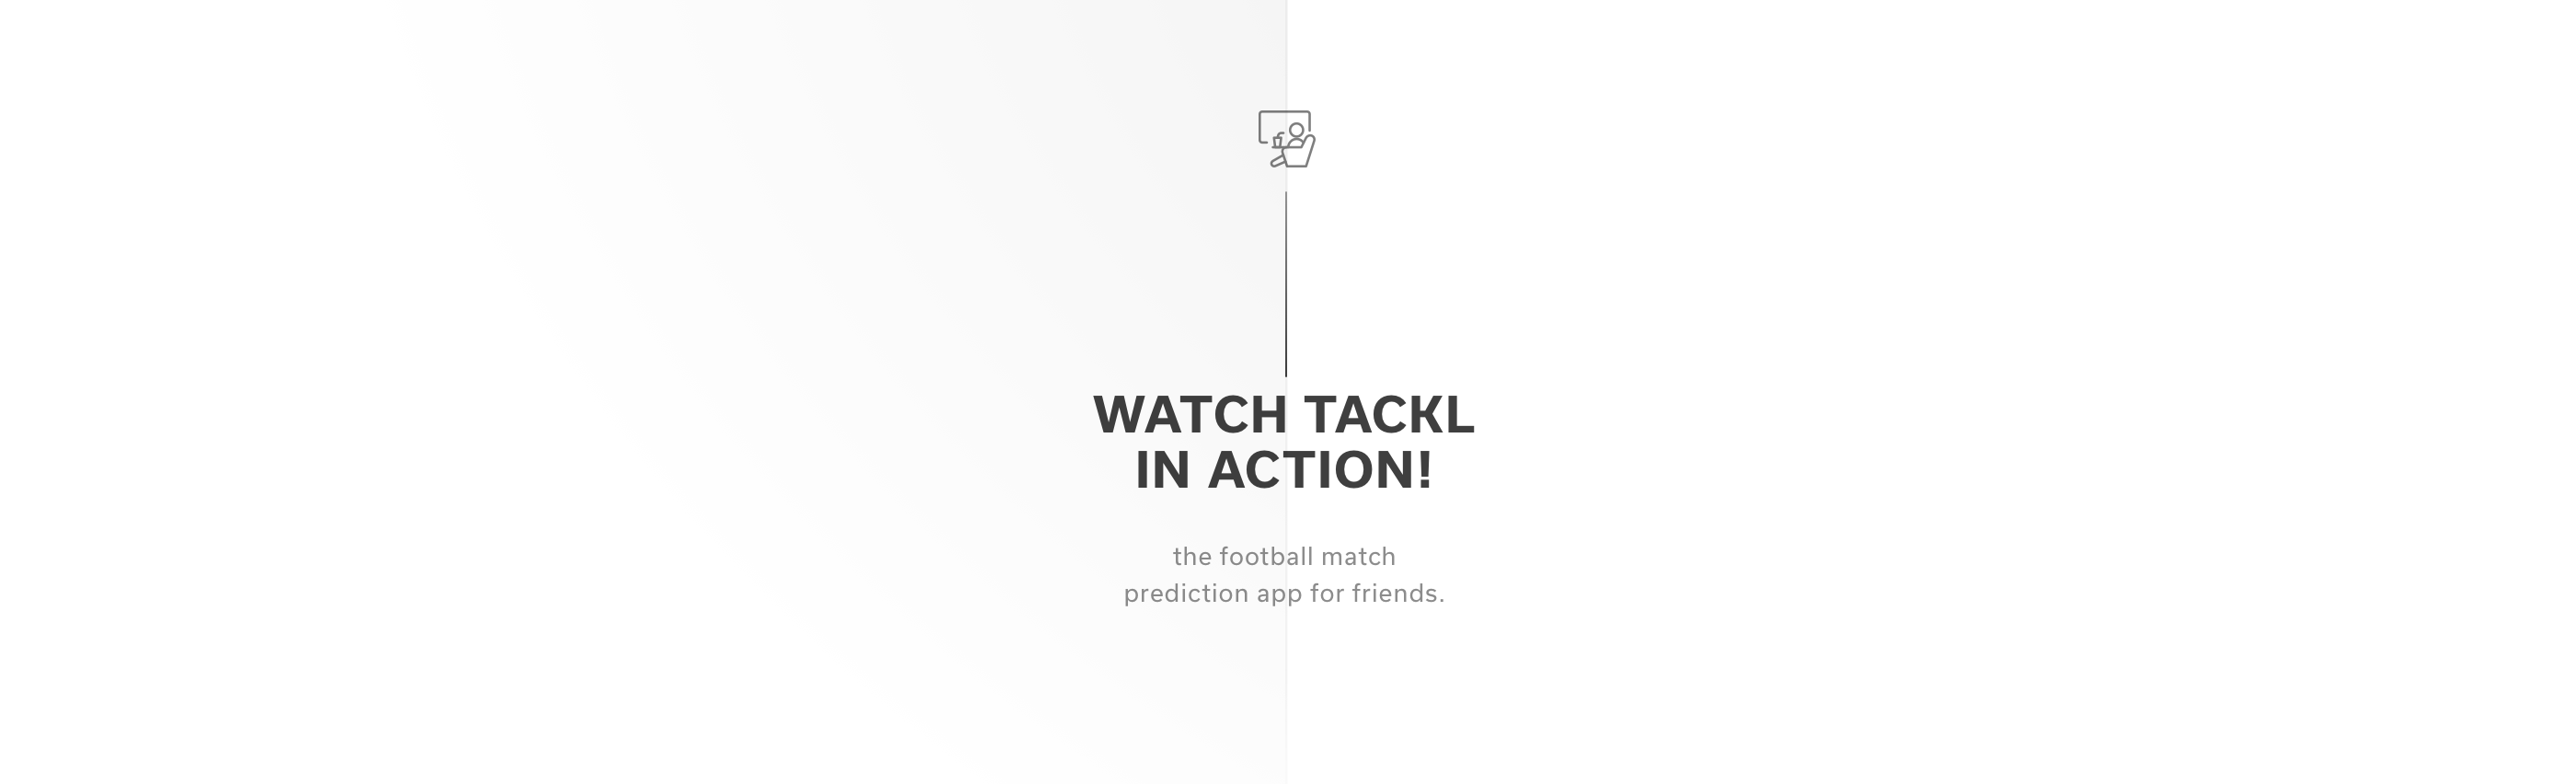 tackl - Football Prediction Game with Friends  on Behance